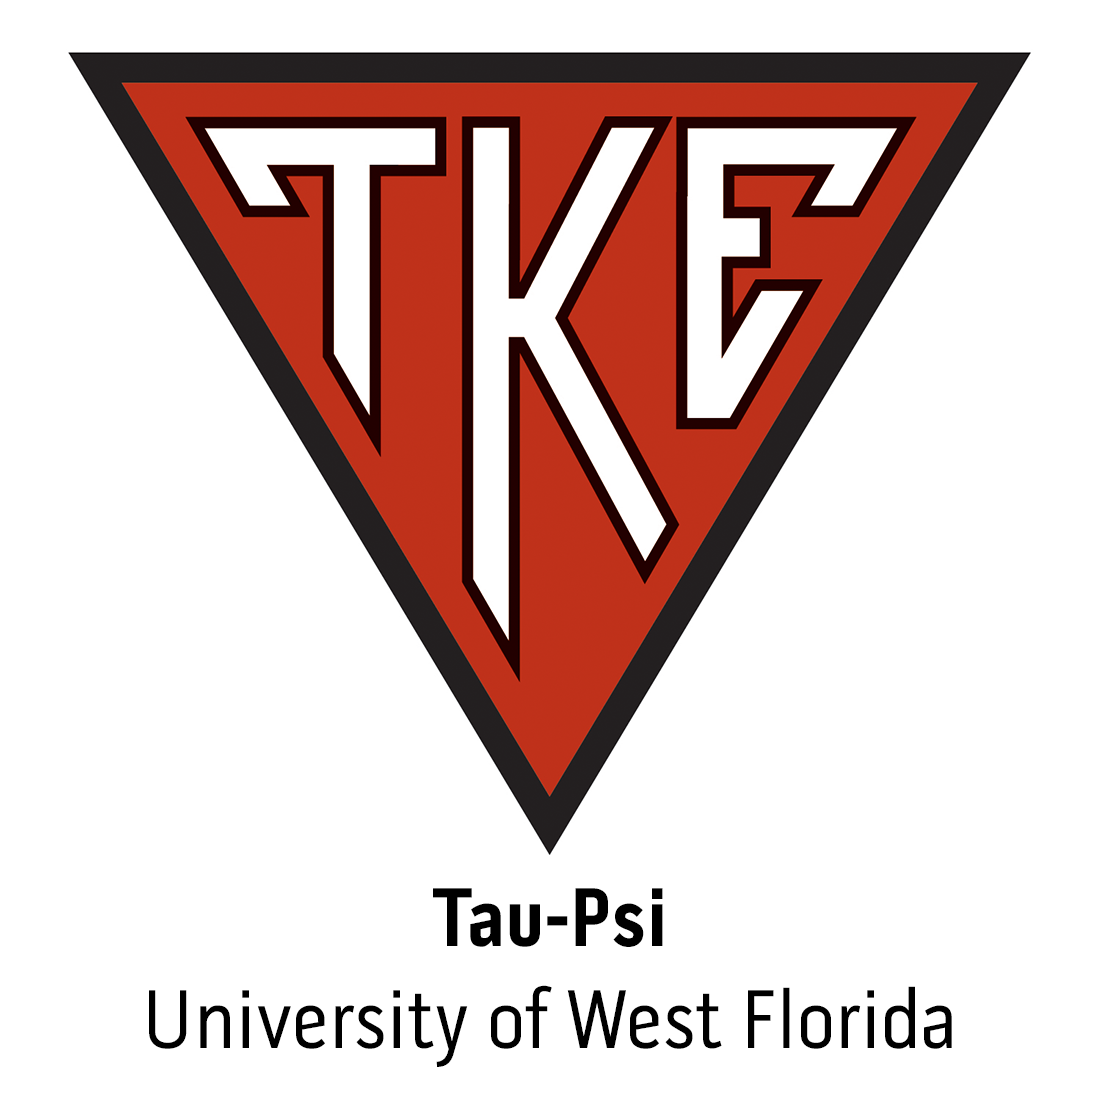 Tau-Psi Chapter at University of West Florida